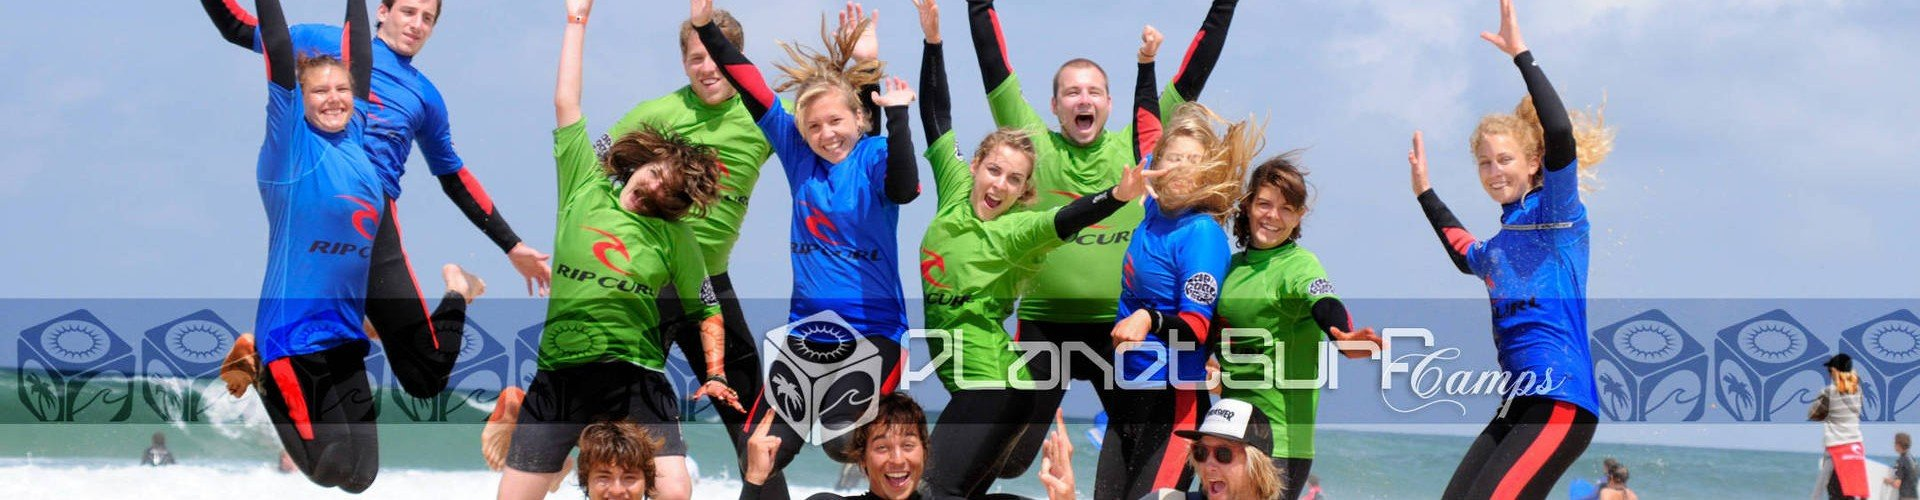 amazing people in the surfspot of France